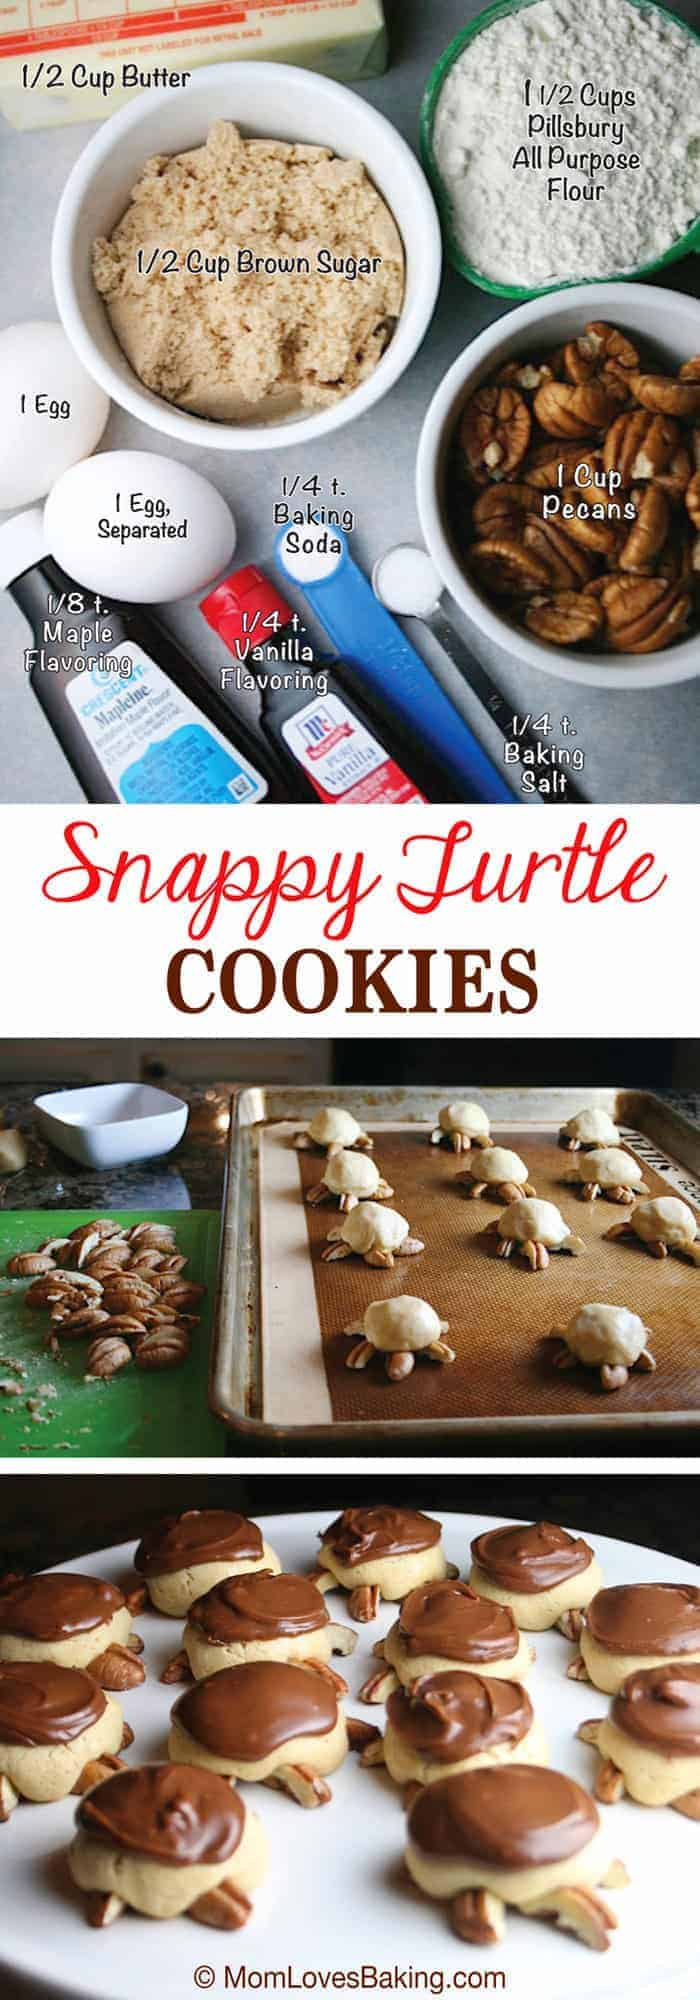 Snappy-Turtle-Cookies